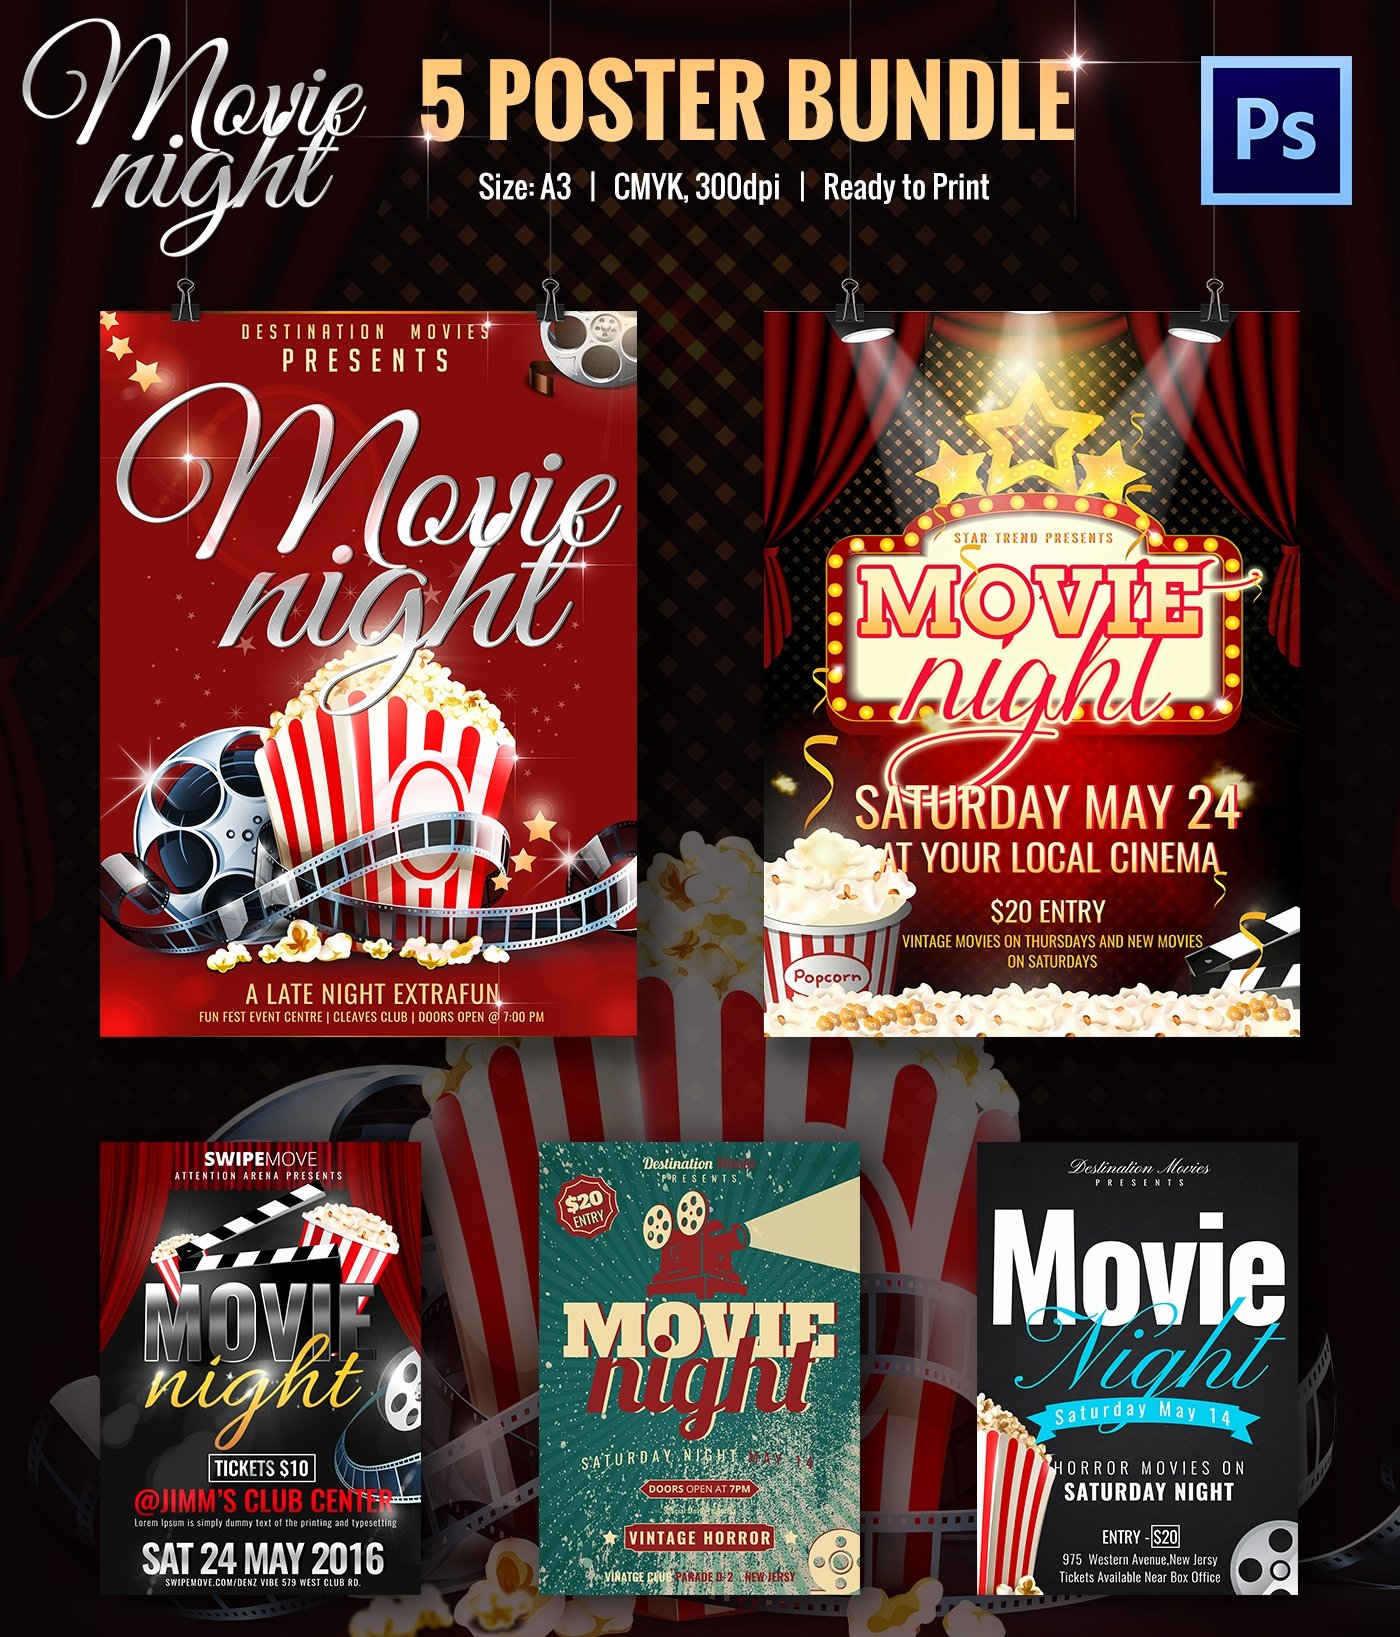 Movie Night Flyer Templates Best Of Movie Night Flyer Template 25 Free Jpg Psd format Download